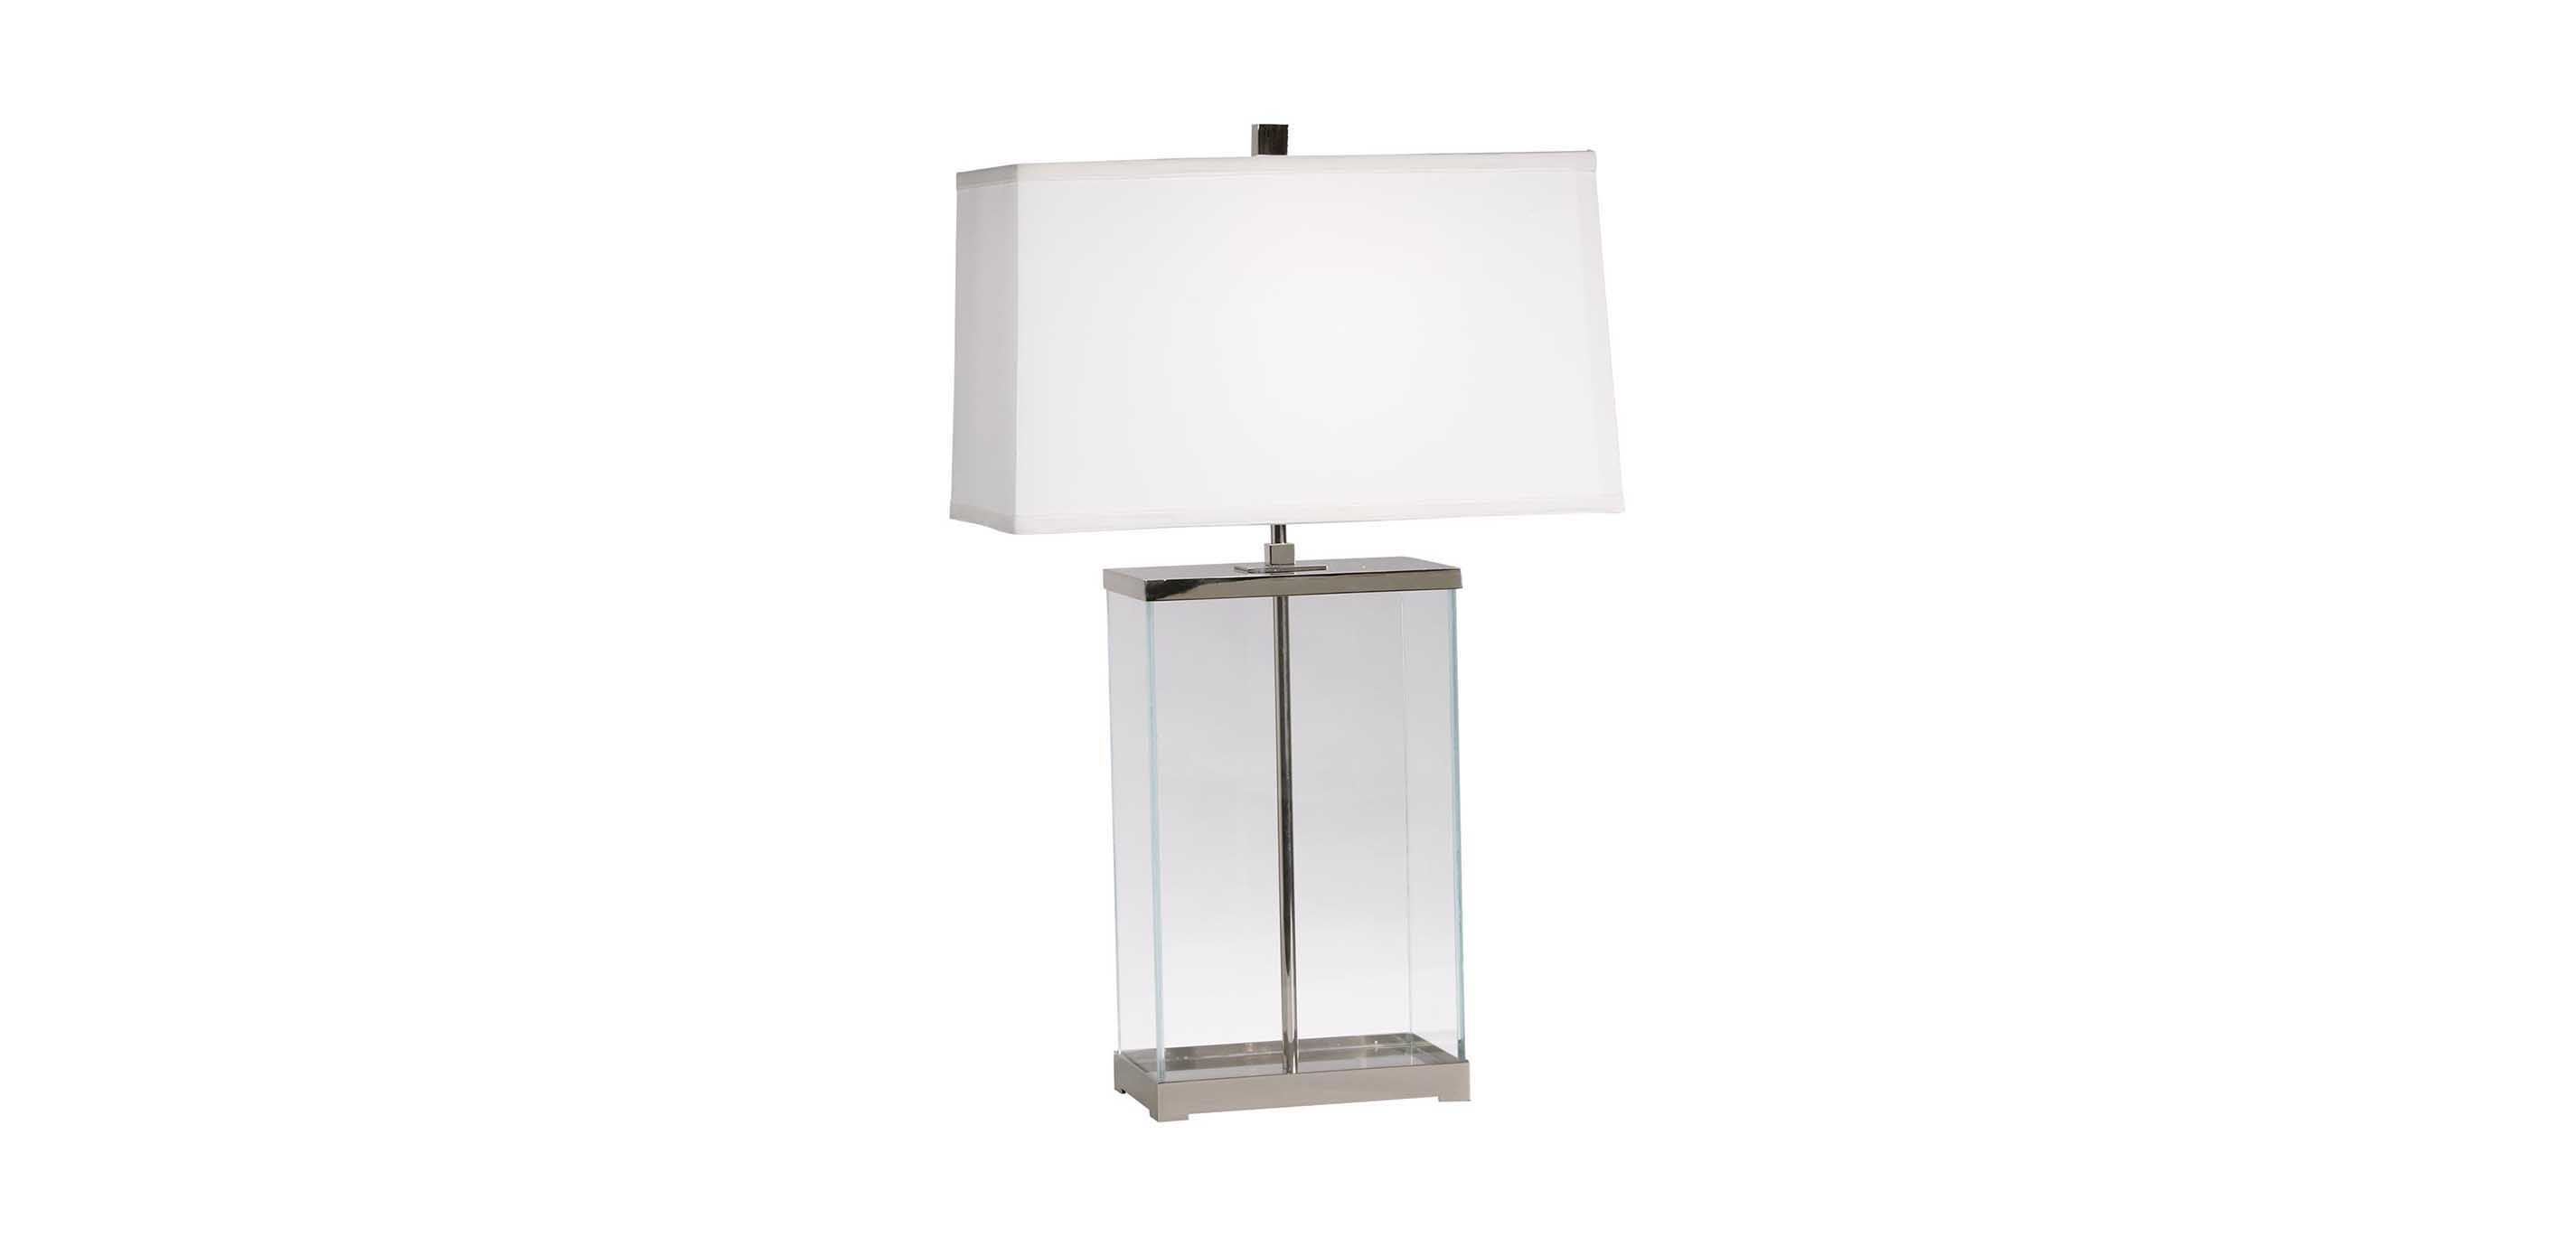 Rectangular glass table lamp table lamps ethan allen images null aloadofball Gallery